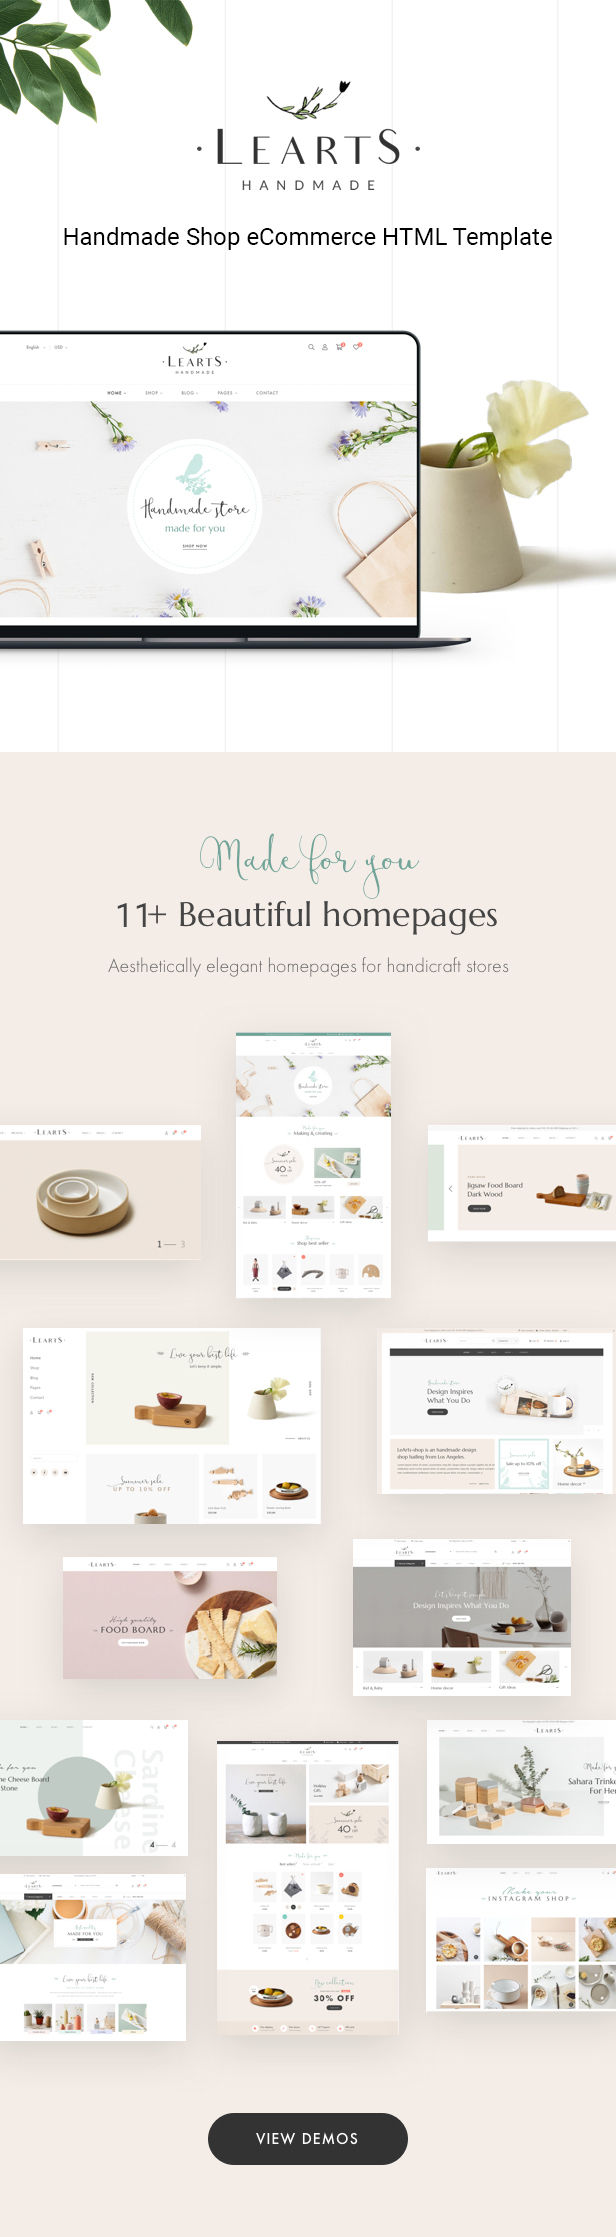 Learts – The Best Handmade Shop eCommerce HTML Template